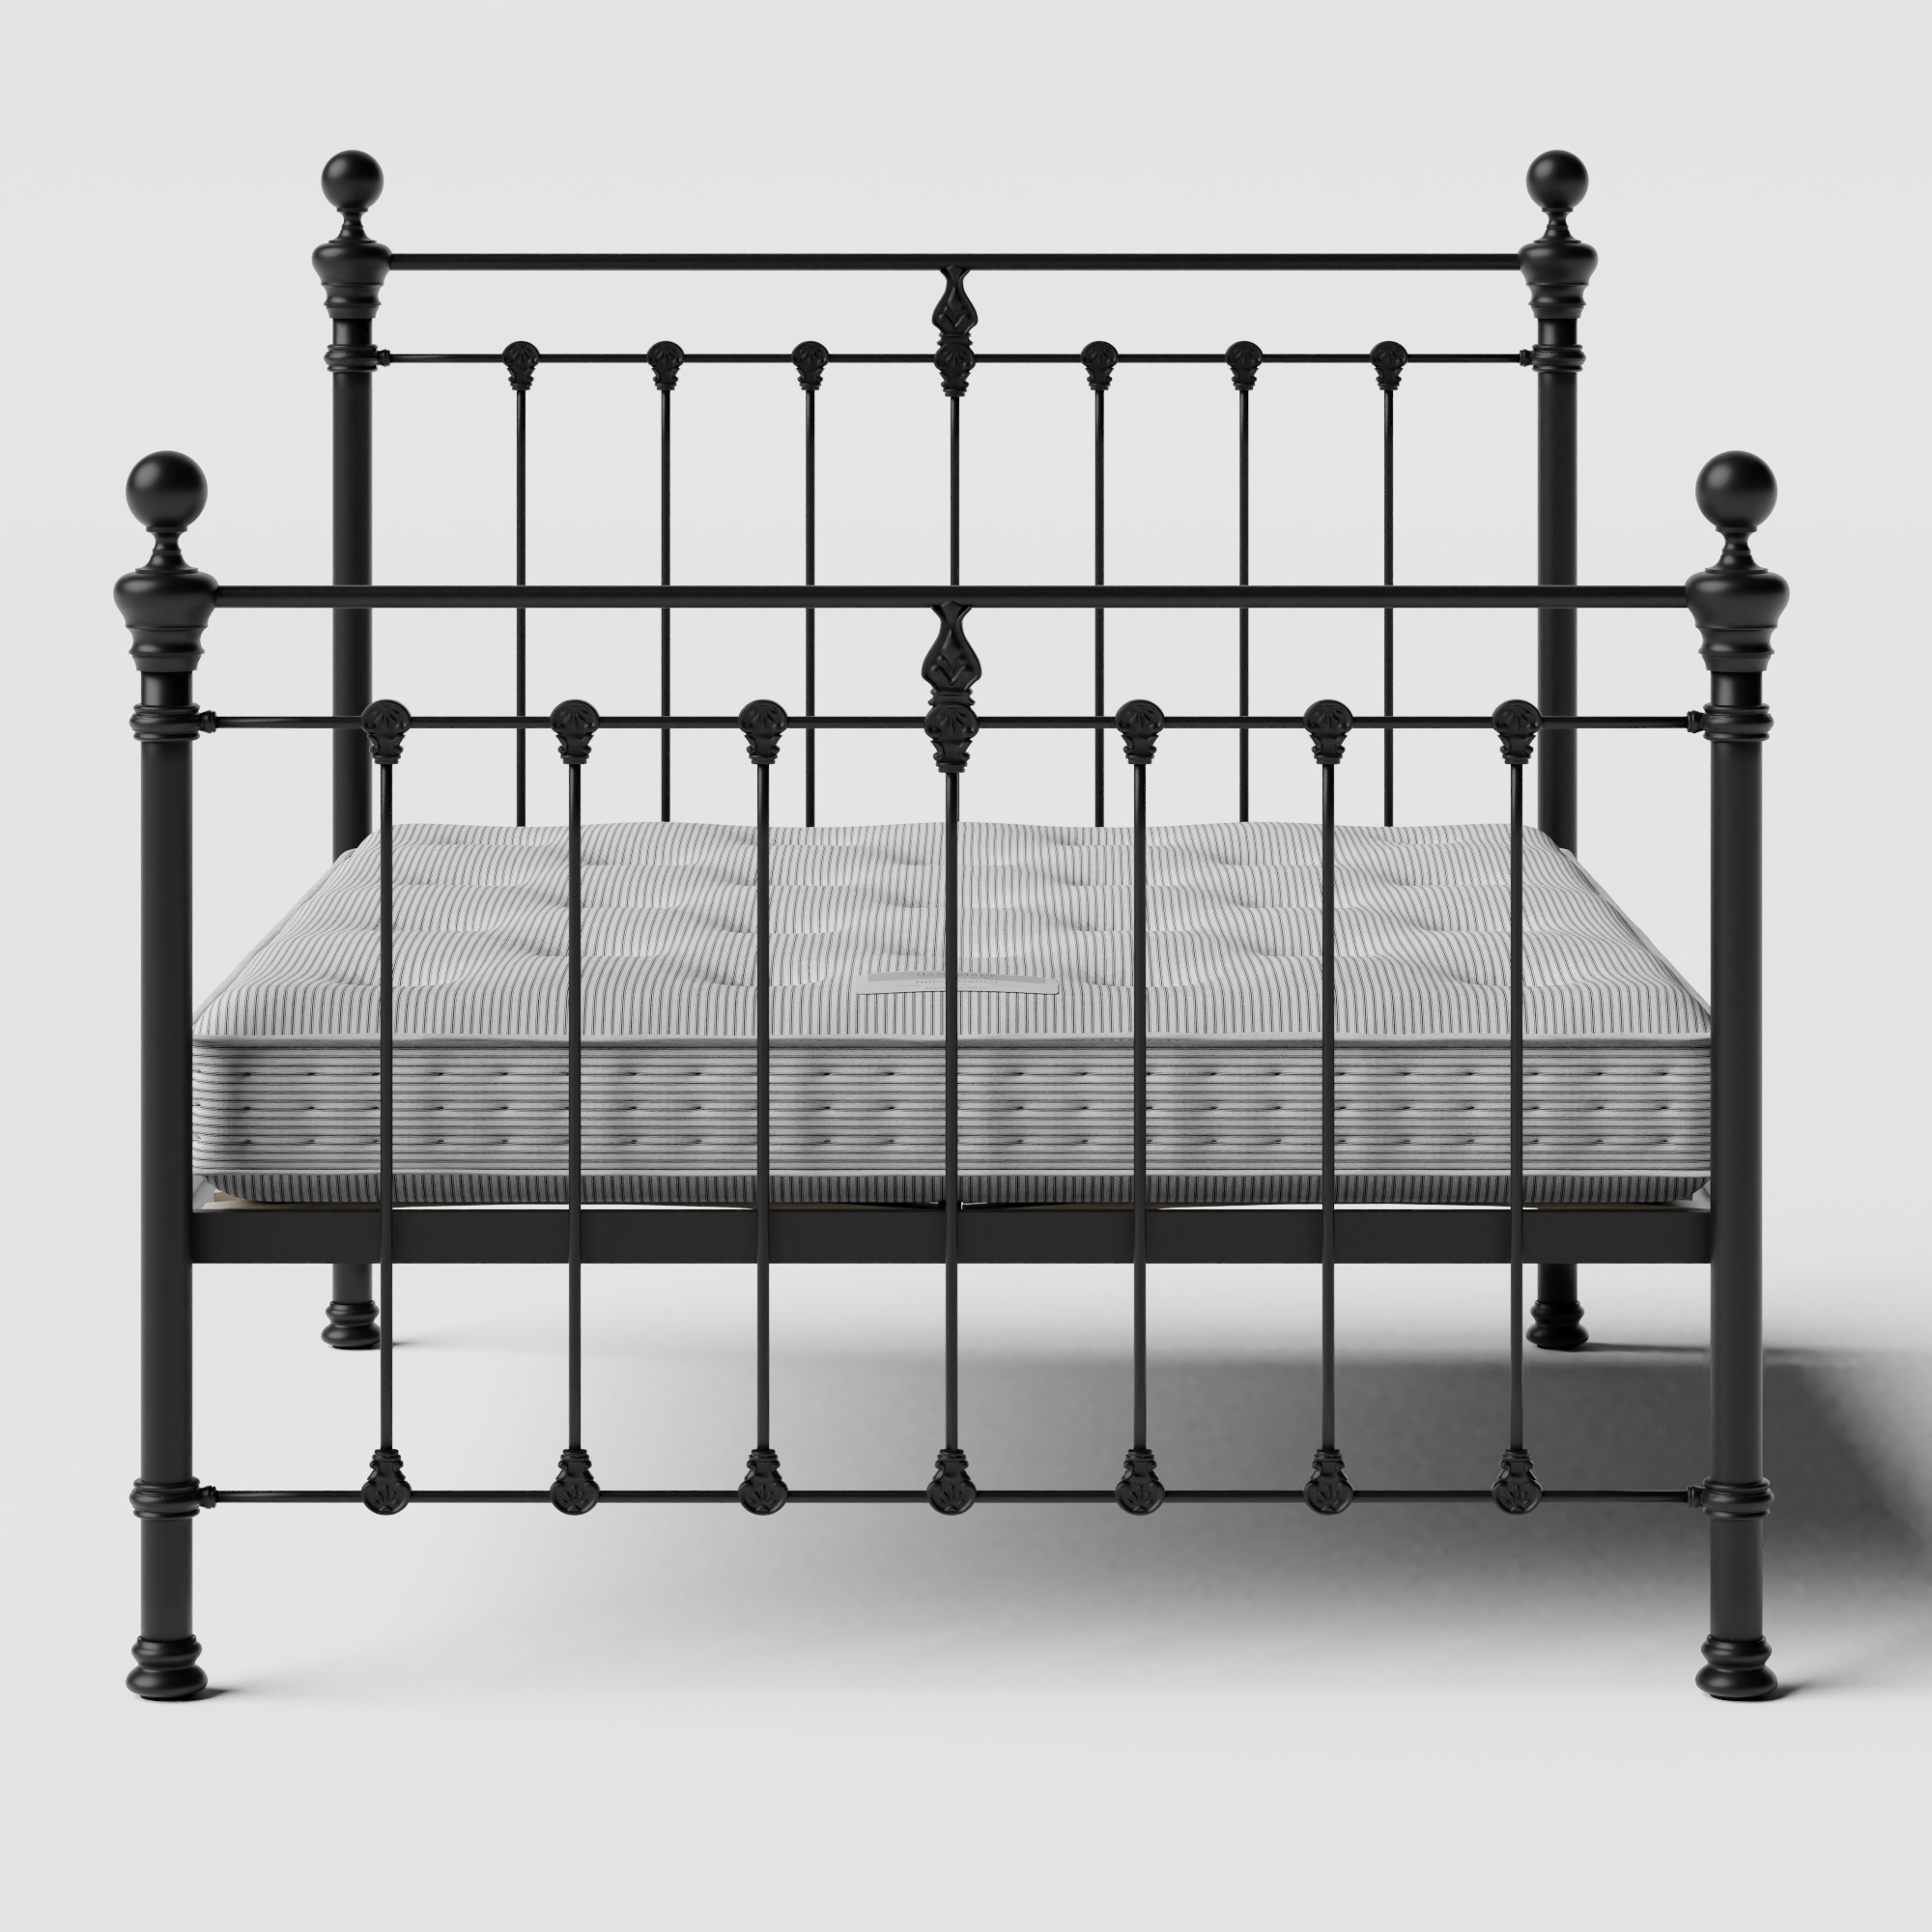 Hamilton Solo iron/metal bed in black with Juno mattress